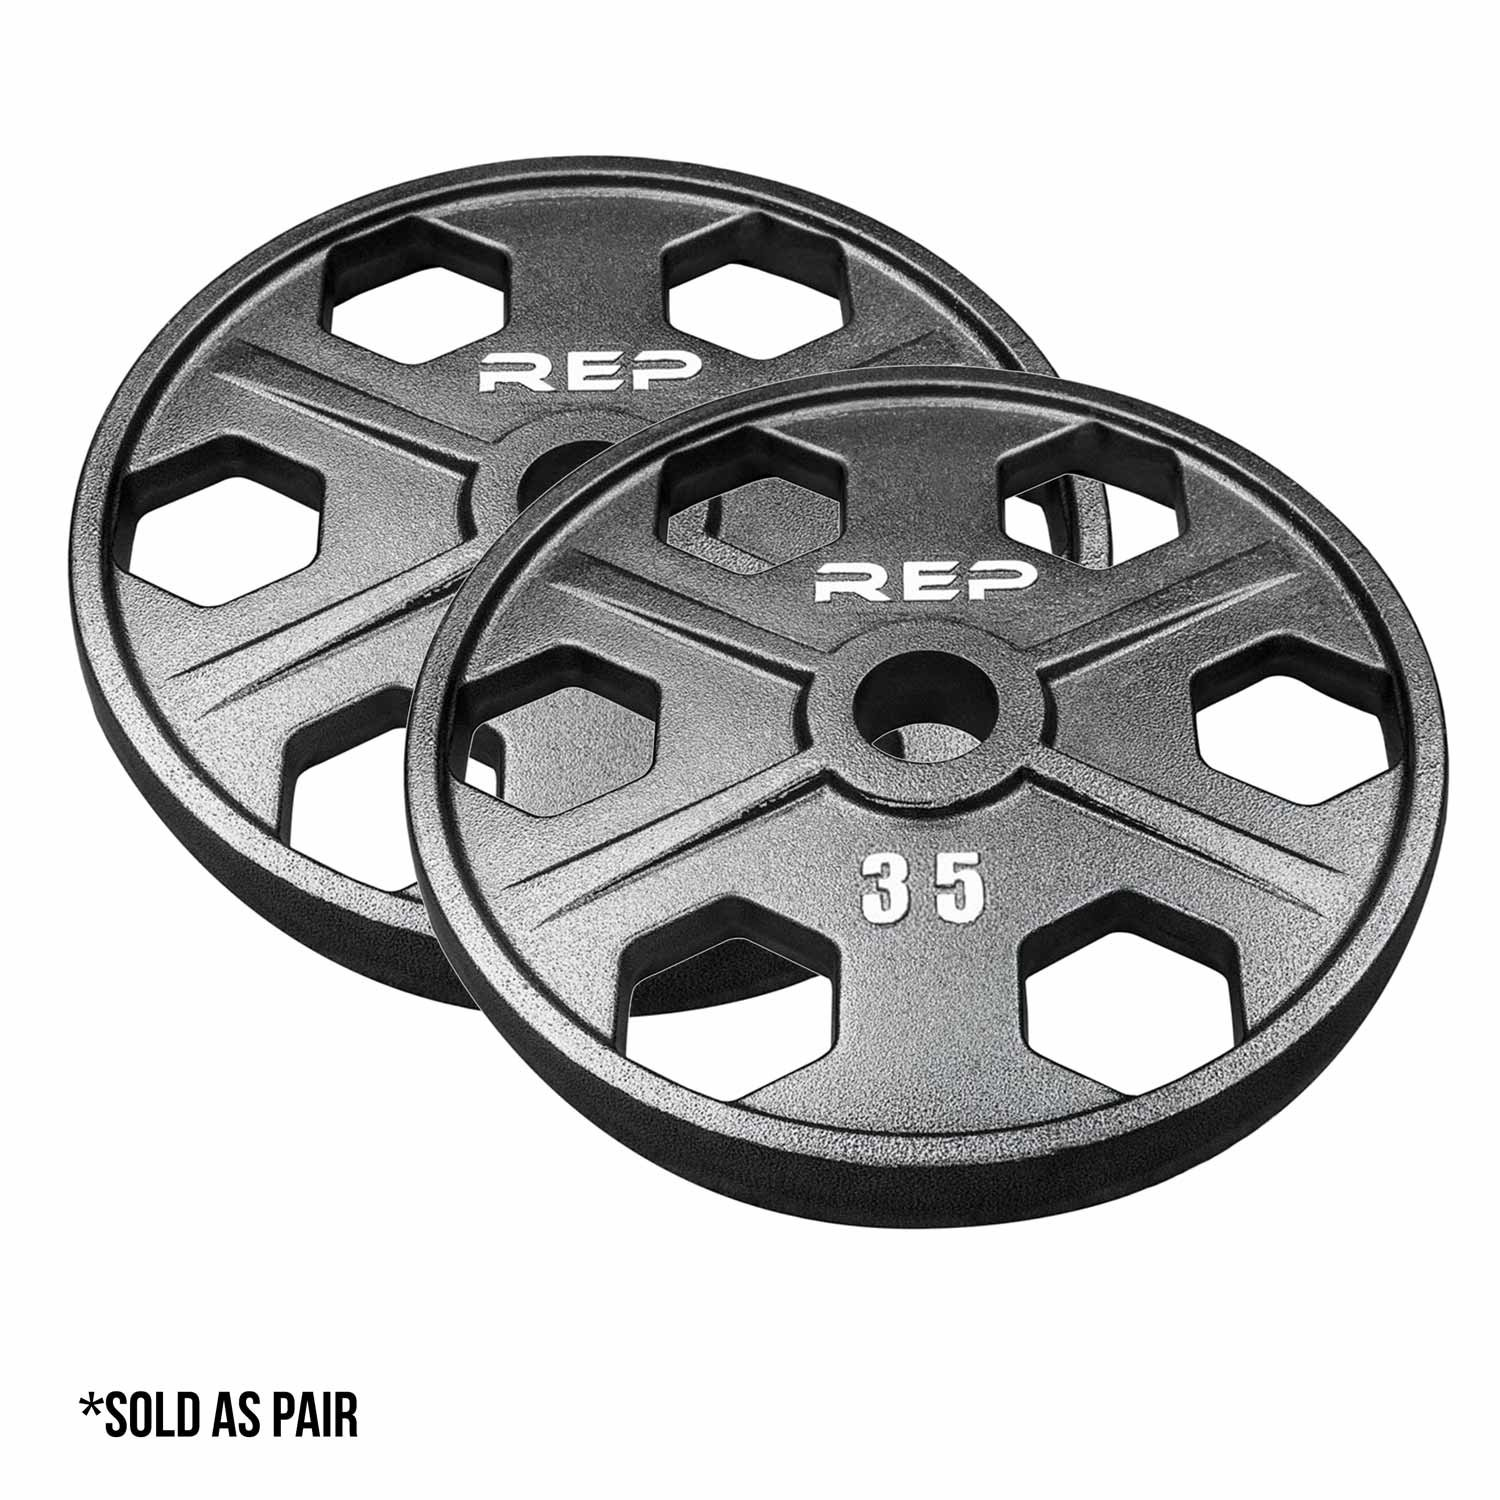 Rep Fitness Rep Gray Equalizer Iron Olympic Plates, 35 lb Pair